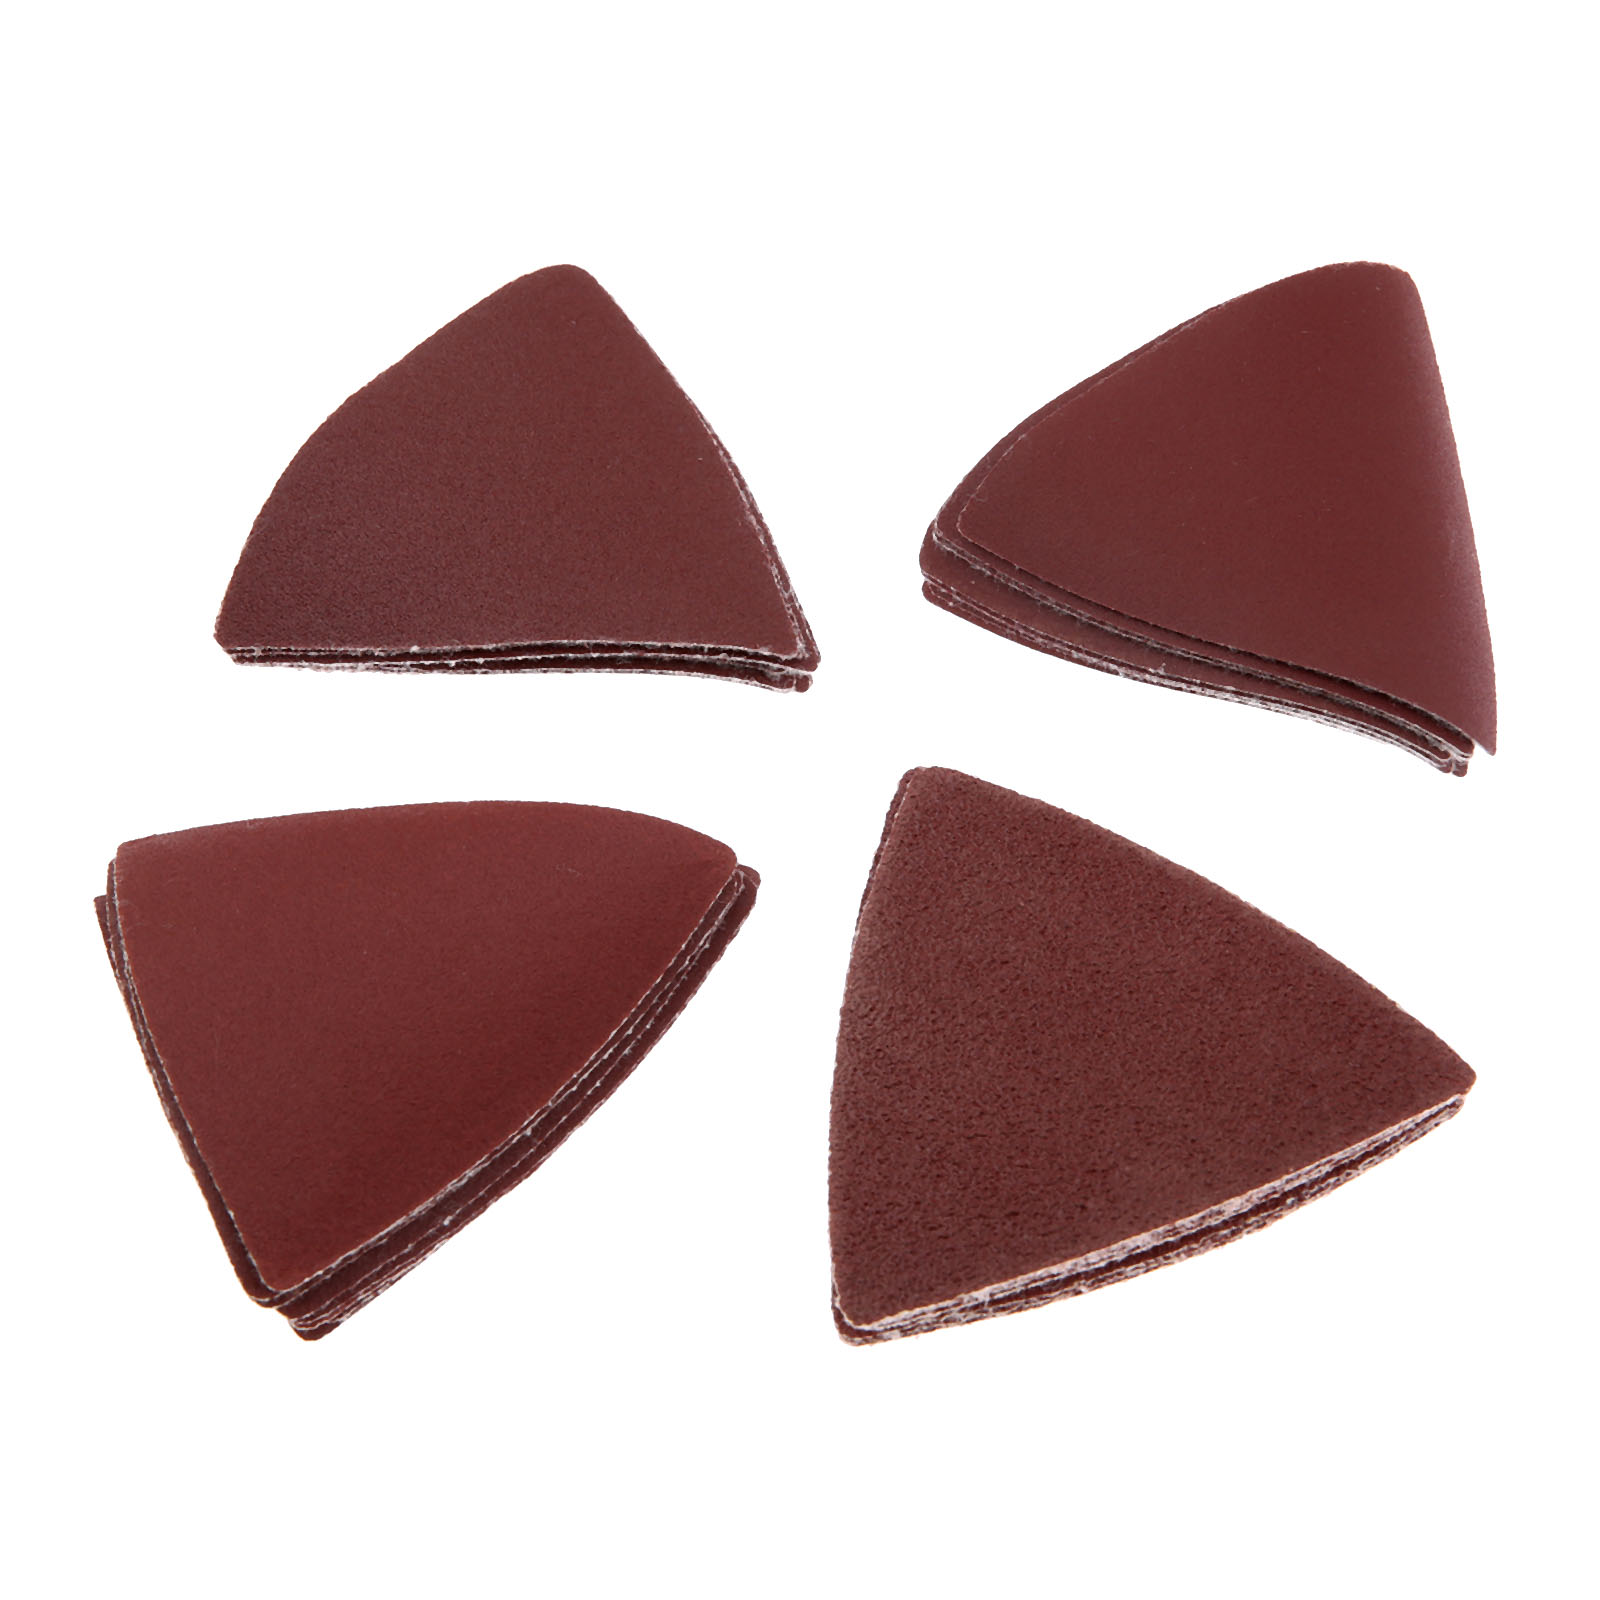 DRELD 32pcs 83mm Triangular Sanding Paper Grit 60/120/180/240# For Multifunction Power Tool As Fein Multimaster Dremel Tools